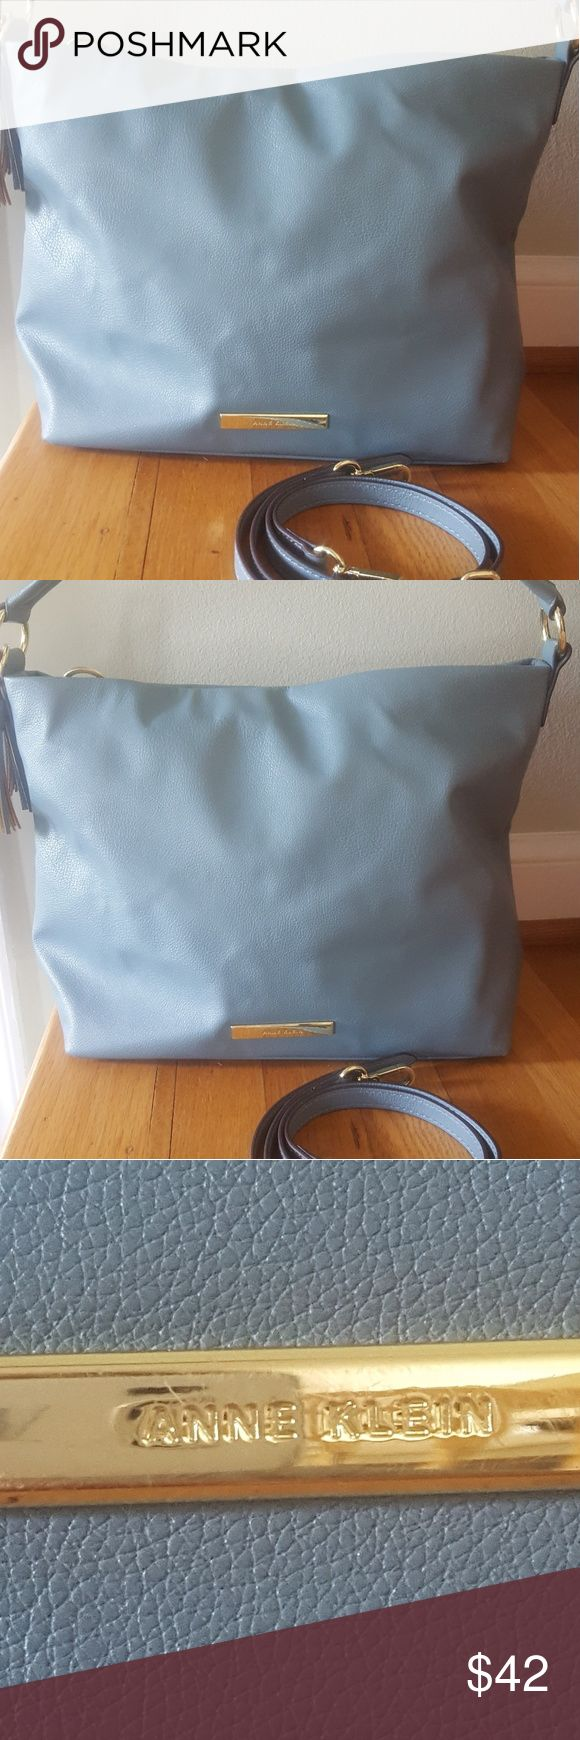 """ANNE KLEIN PALE BLUE HANDBAG TOP ZIPPER This bag is very good condition. The name tag has minor rub mark but overall great shape.  Very nice pale blue handbag/shoulder bag. Shoulder bag strap,is included.  Inside is navy and white polka dot lining. Also 1 zip pocket and 2 slots for phone keys, etc.  Measure14"""" x 10"""" x 5""""  Should strap drop is 7"""" Additional strap drop is adjustable approx. 18"""" Anne Klein Bags Shoulder Bags"""